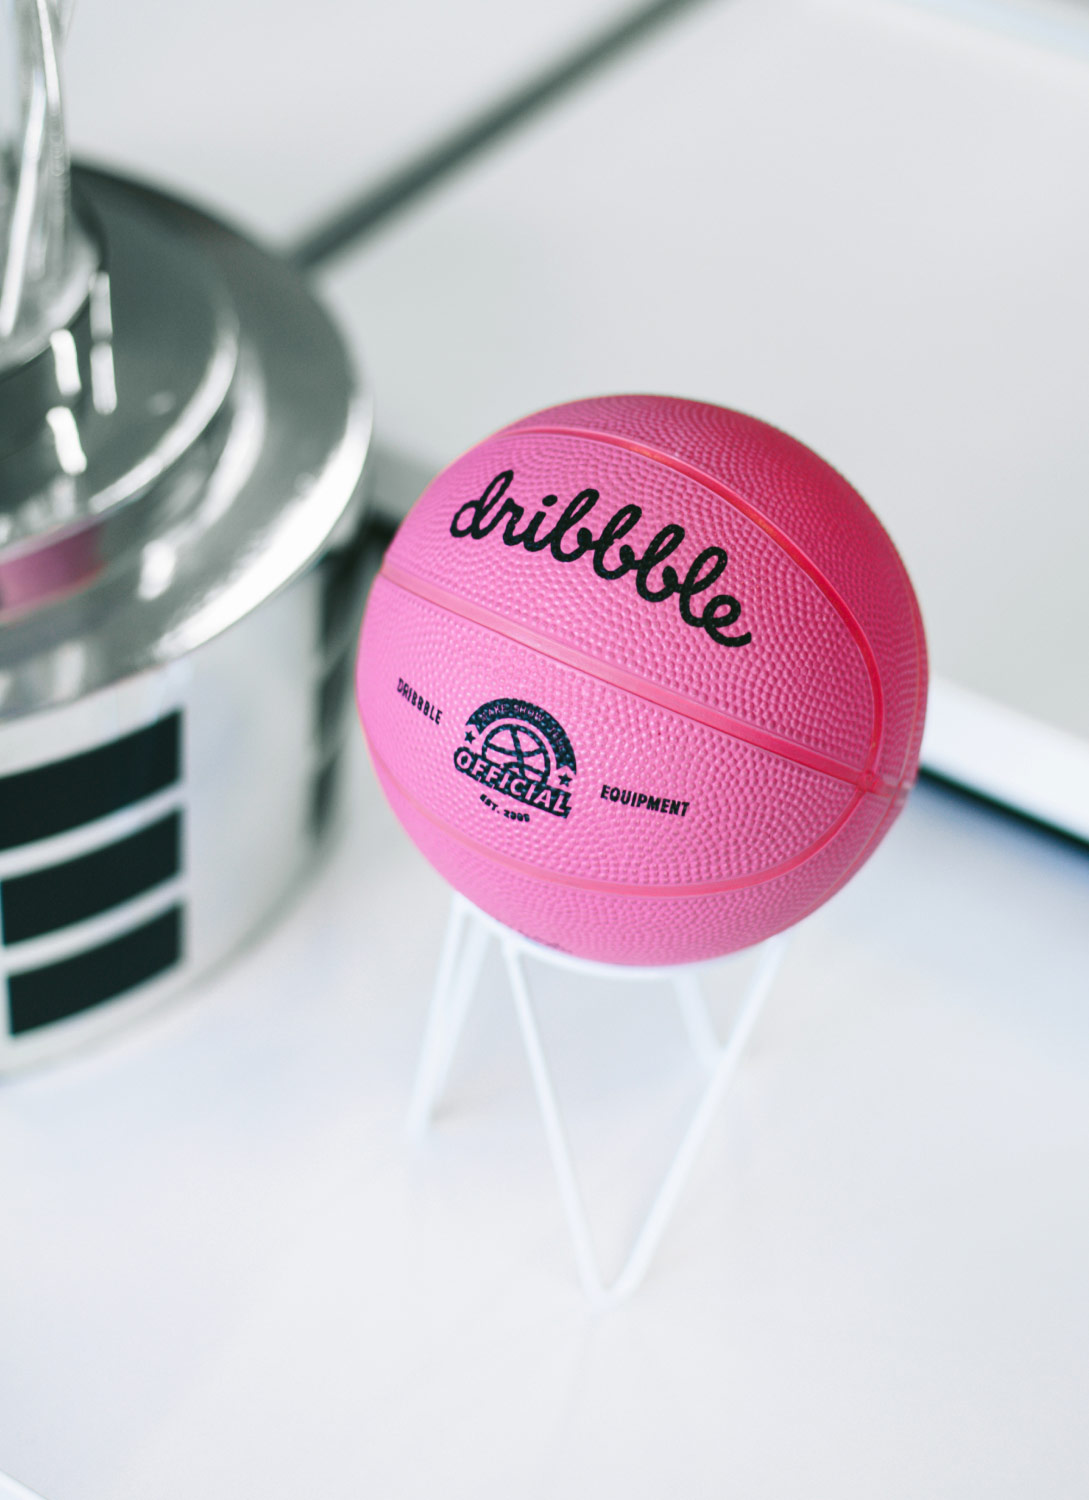 A Dirbbble ball.